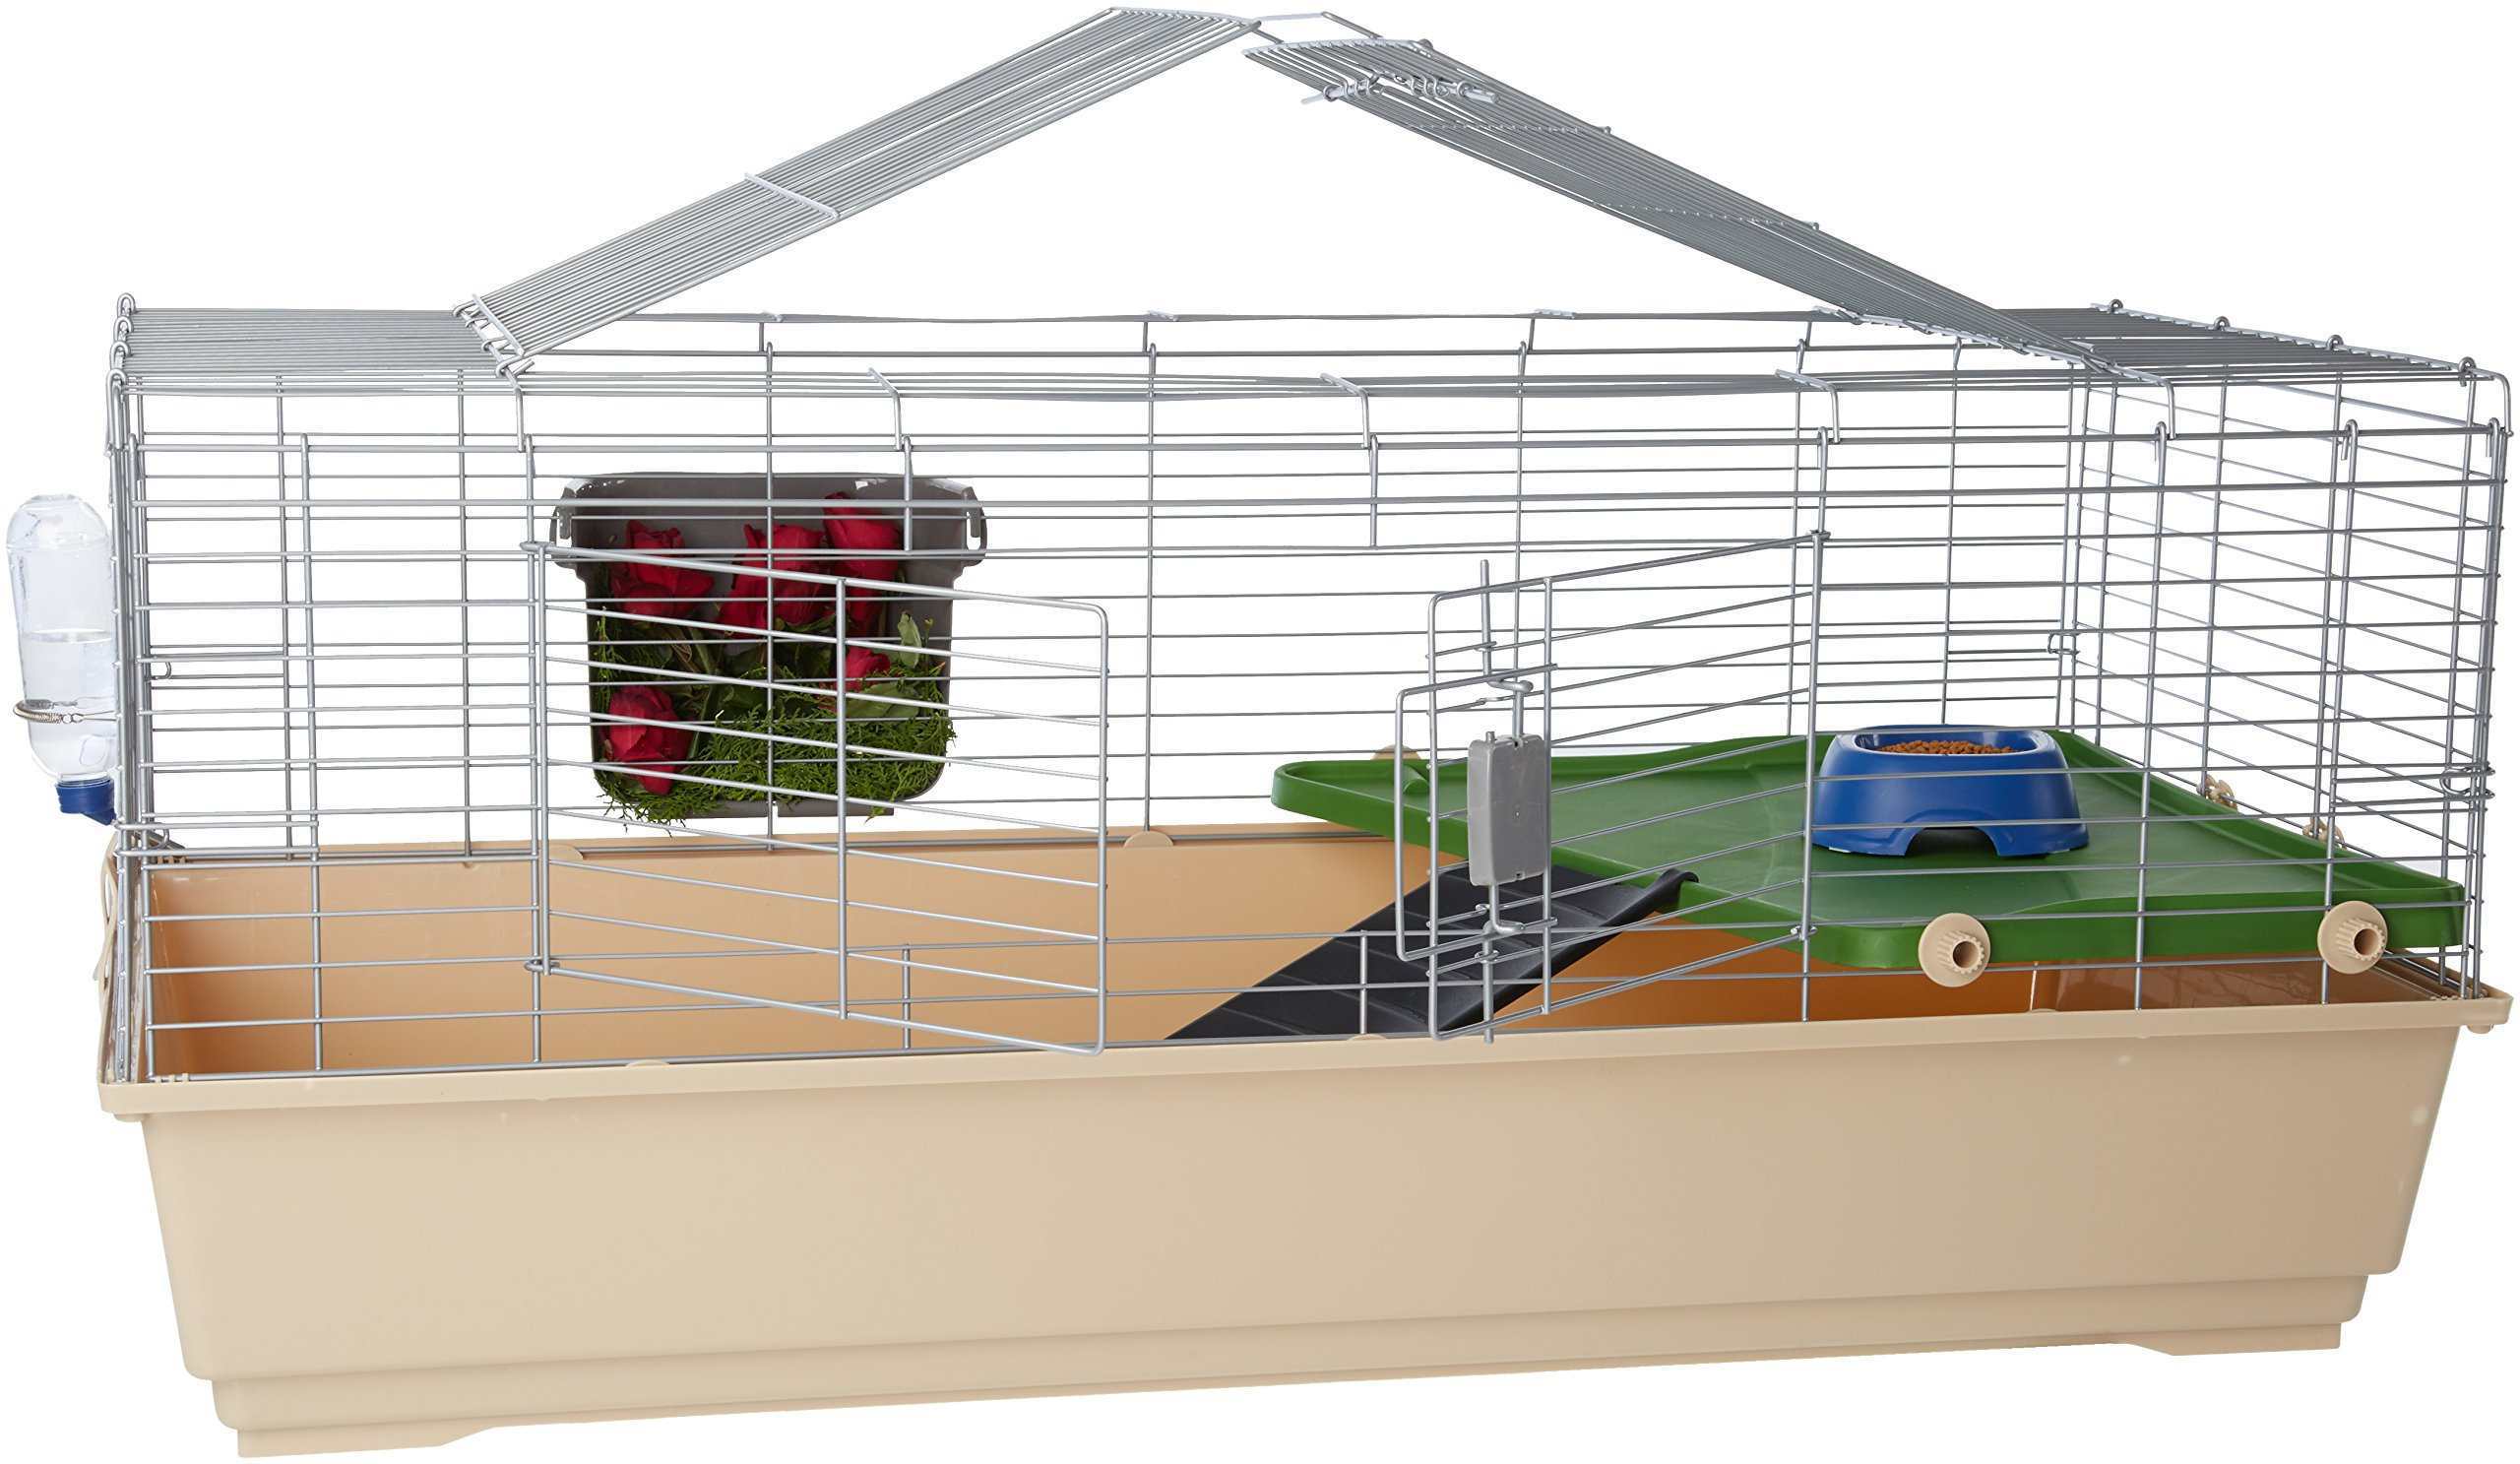 AmazonBasics Small Animal Cage Habitat With Accessories 1